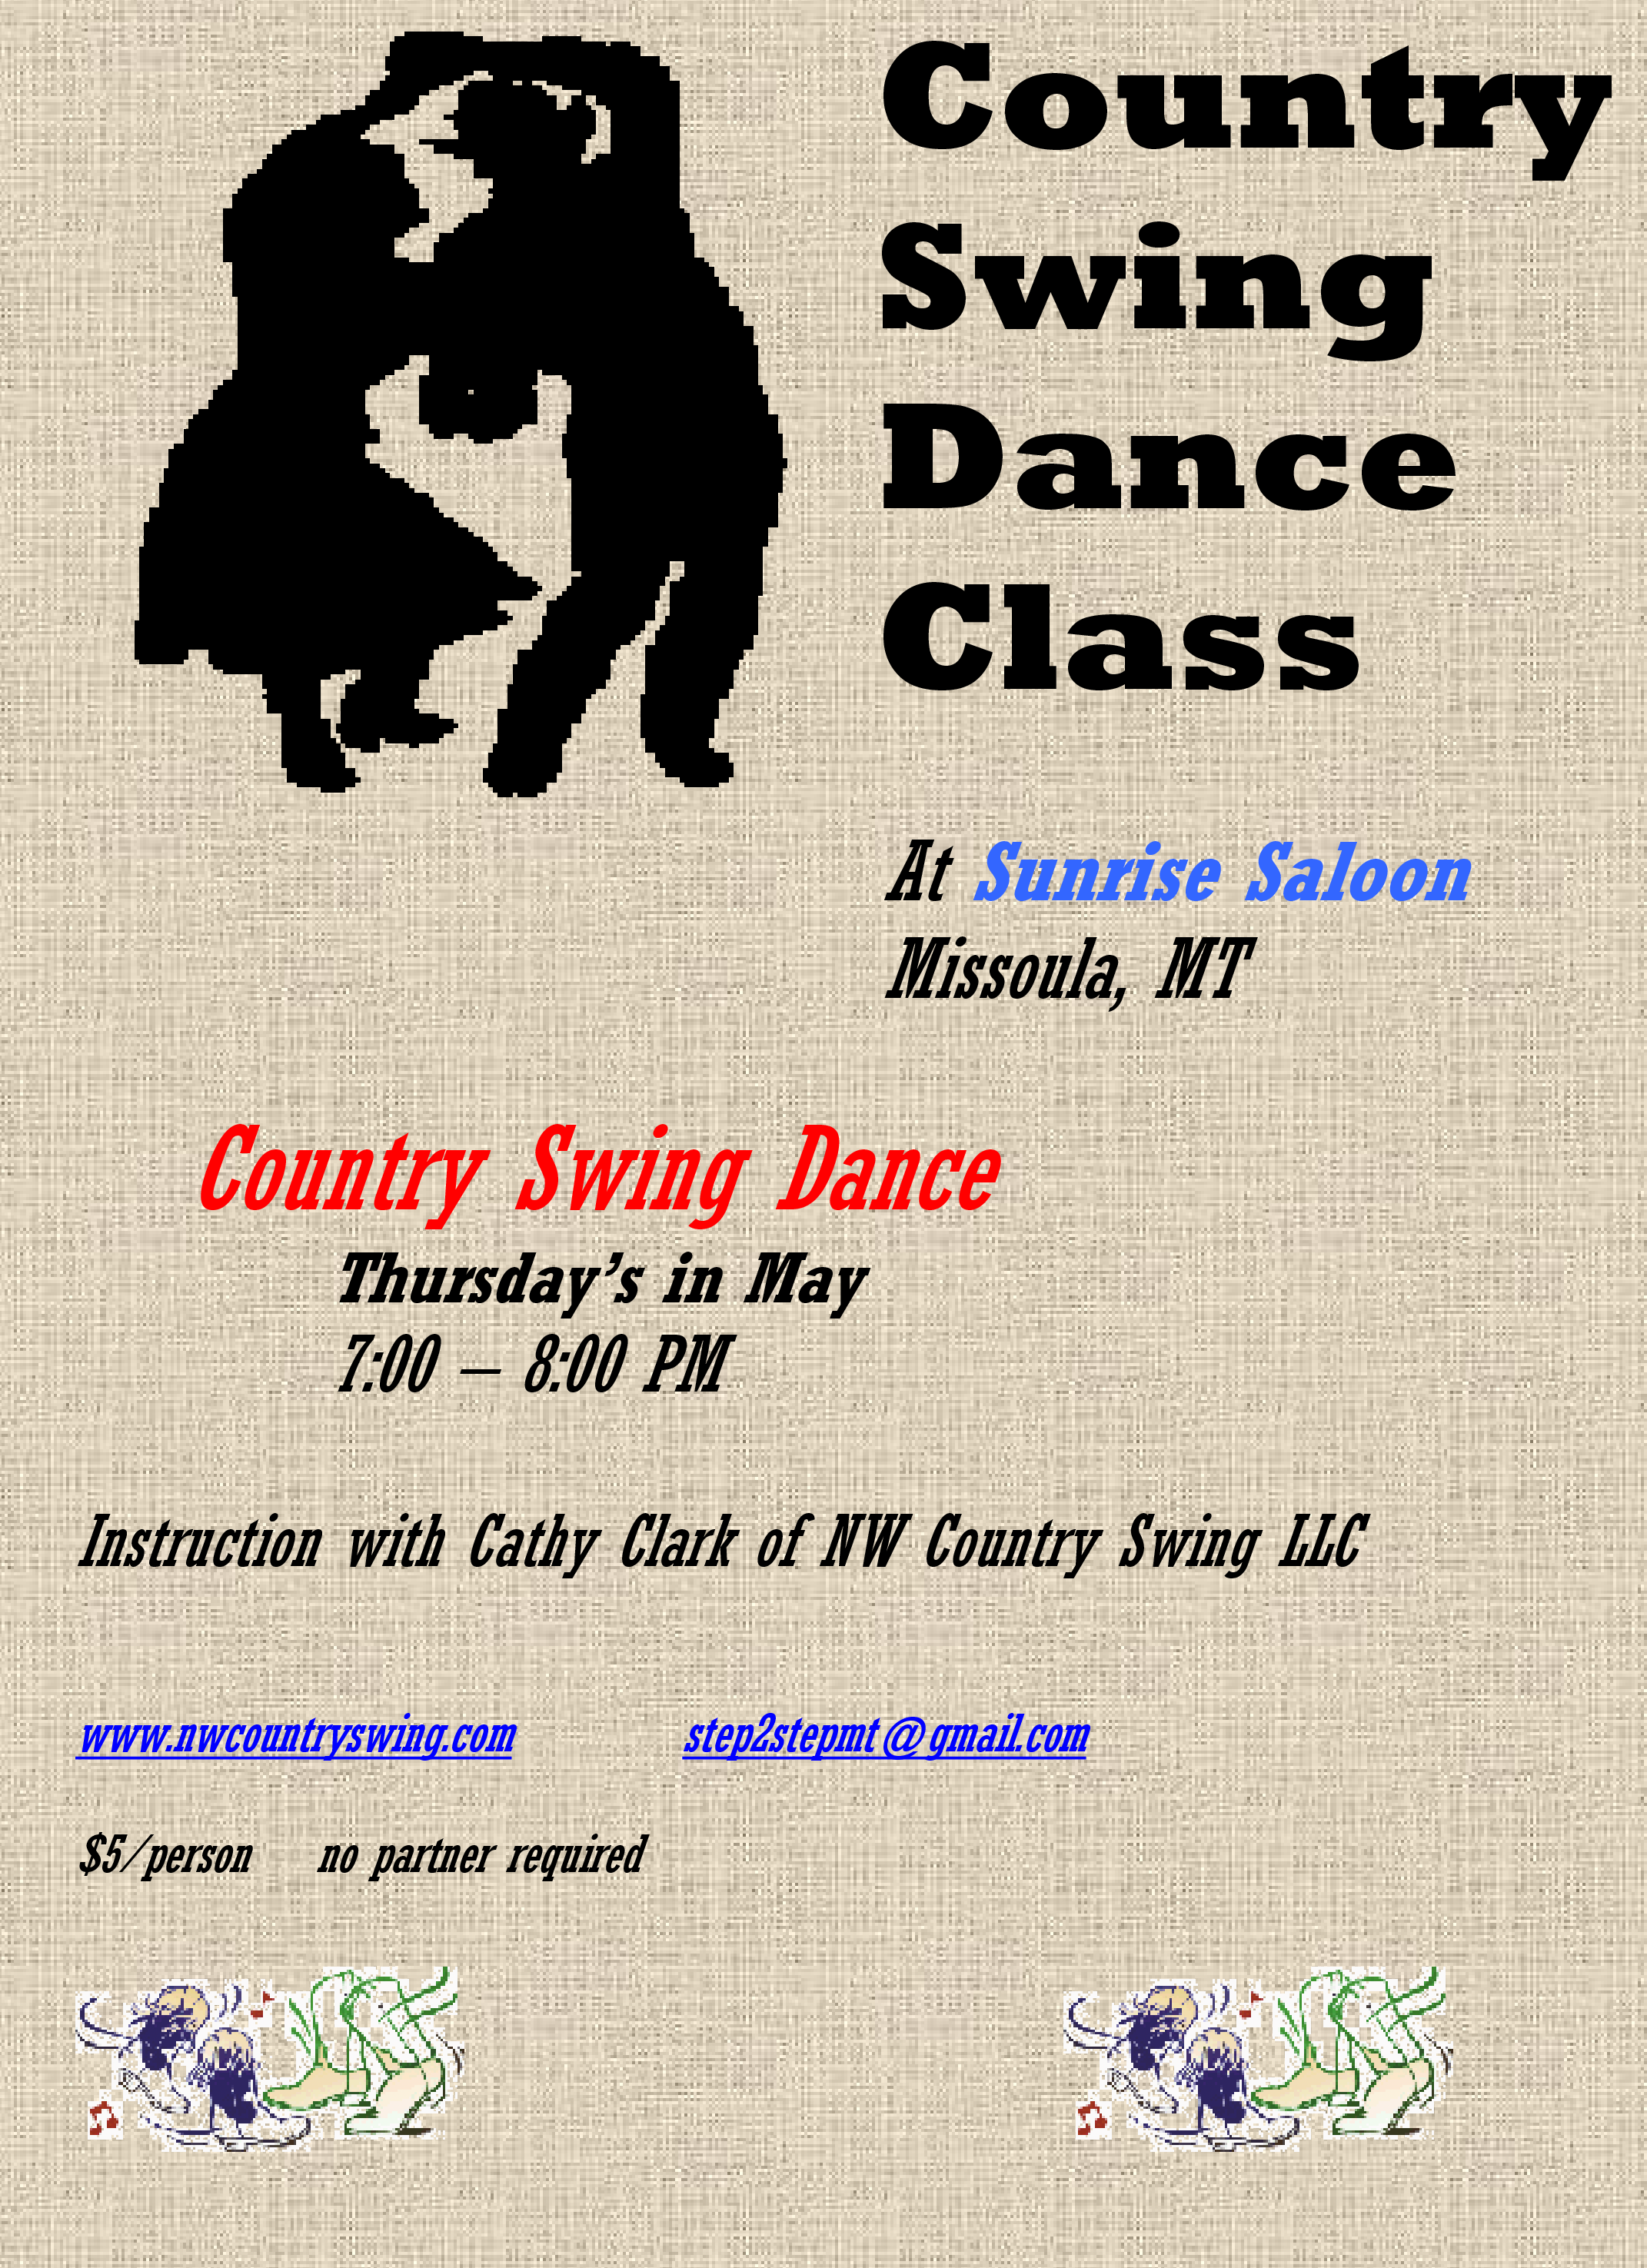 COUNTRY TWO STEP DANCE CLASSES